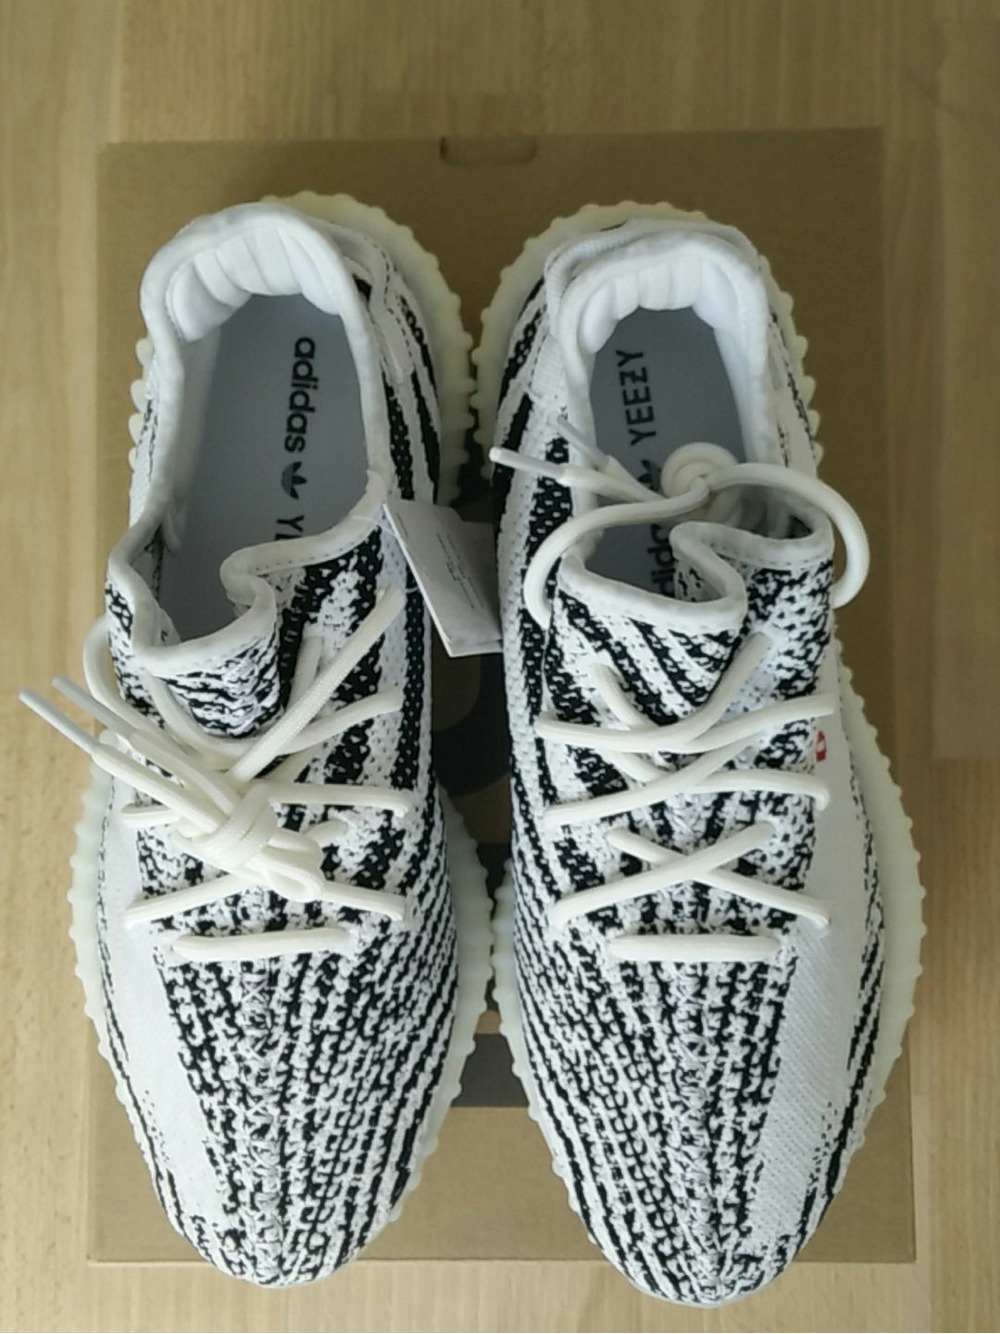 ASMR Yeezy 350 V 2 Zebra Unboxing Review.